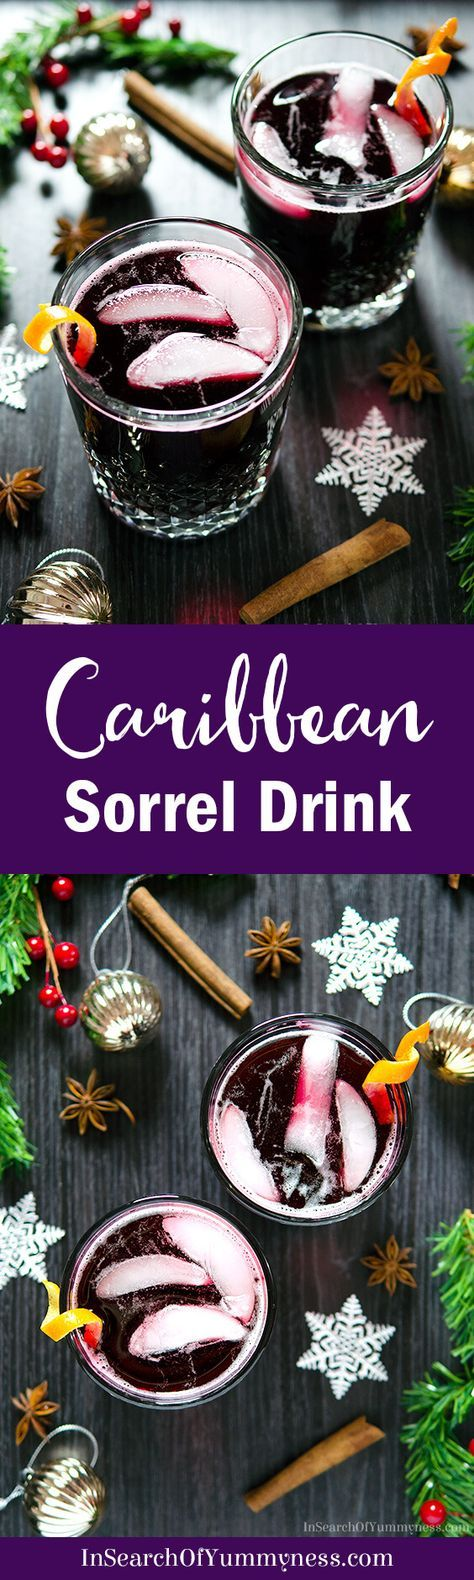 Sorrel Drink is a tangy, spice-infused beverage that is often served at #Christmas and New Year's in several parts of the Caribbean. Get the #recipe at InSearchOfYummyness.com